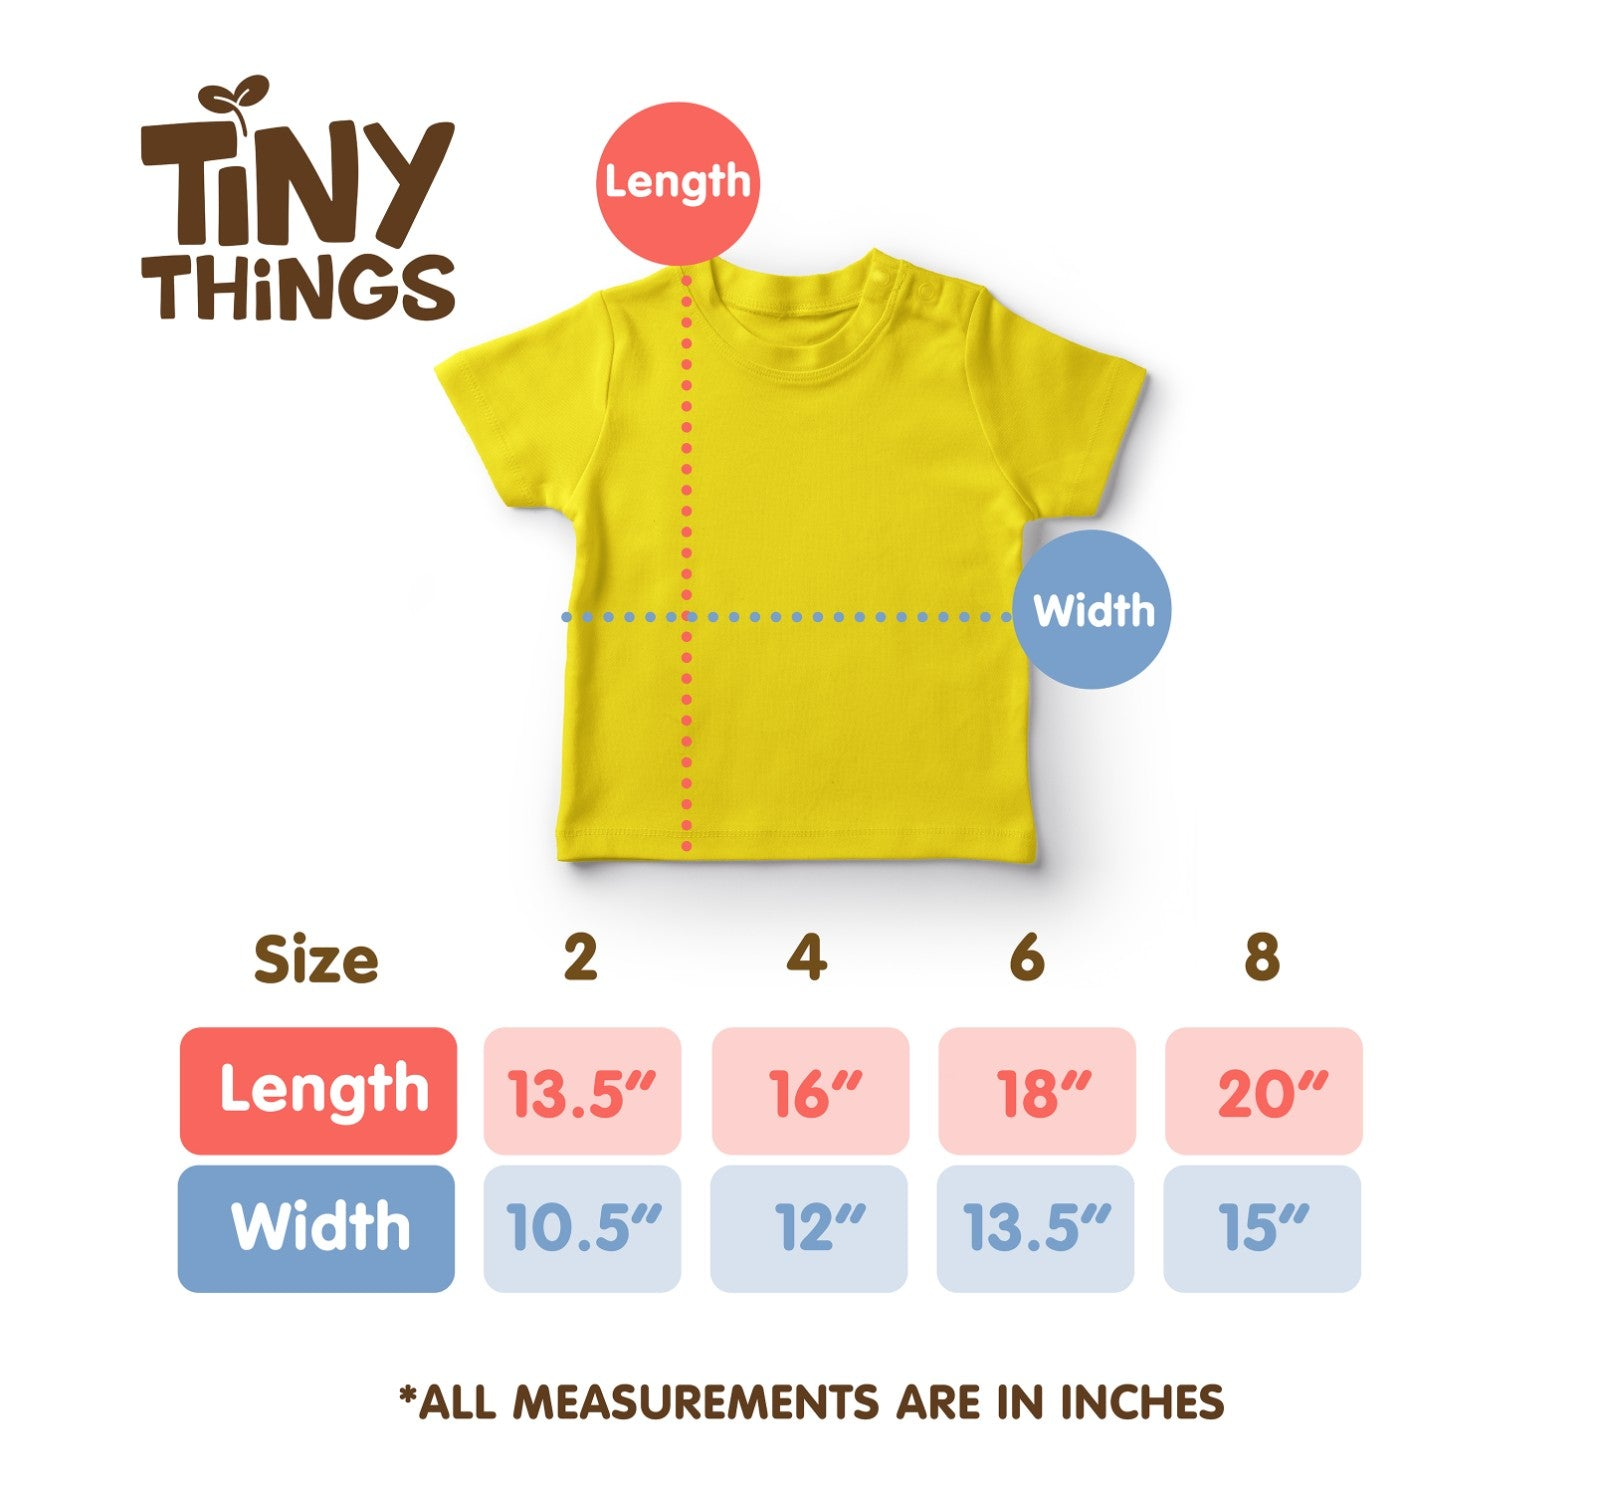 TINY THINGS Save the World Shirts